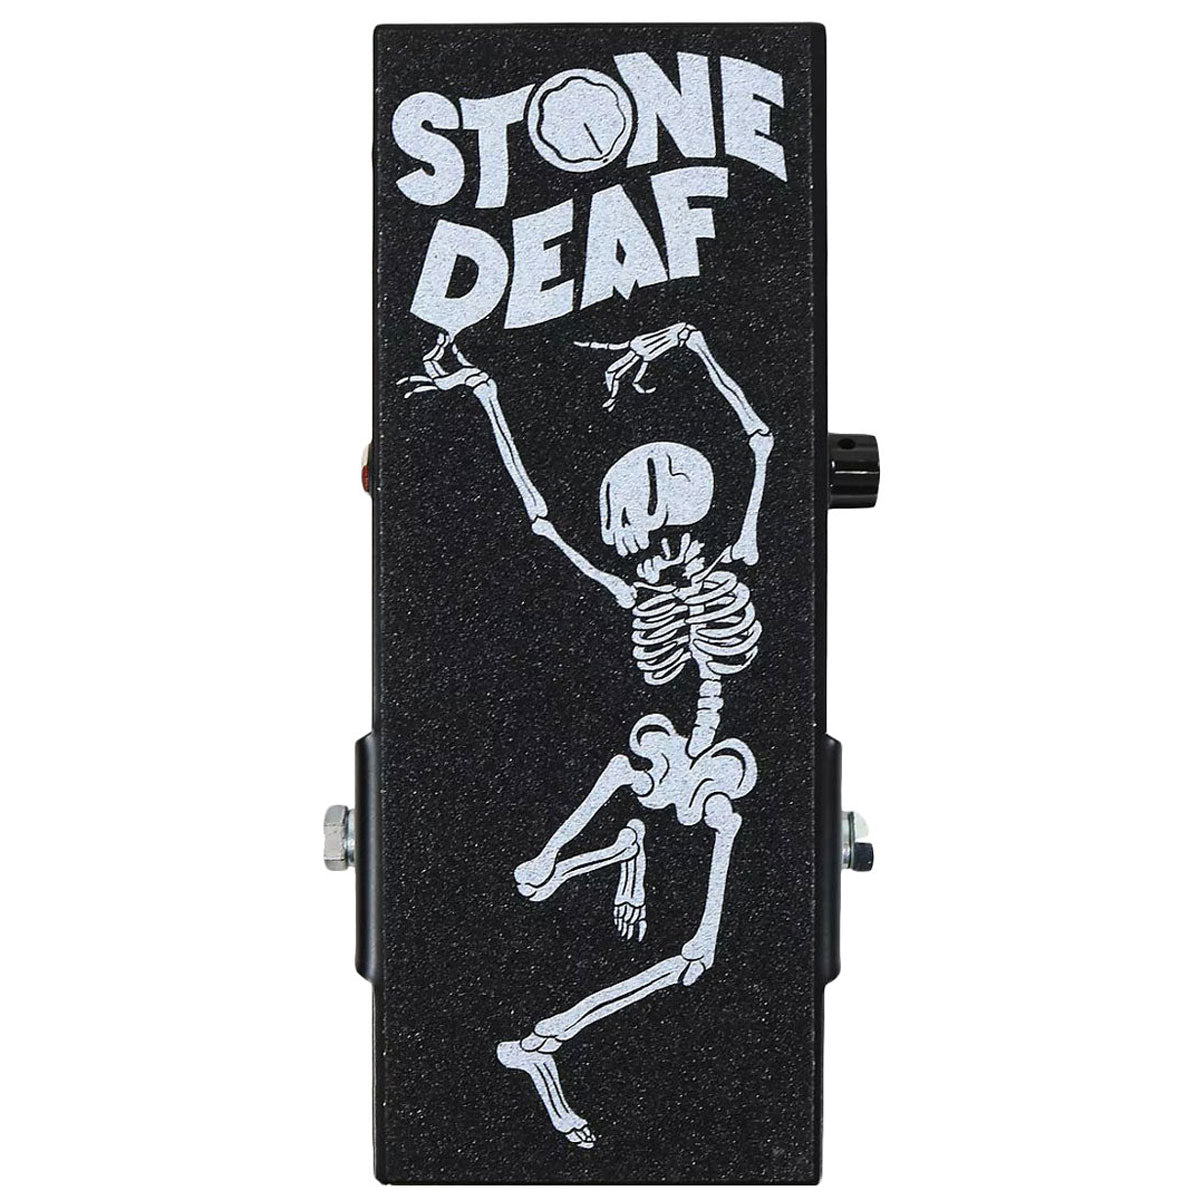 Stone Deaf EP-1 Expression Pedal | Lucky Fret Music Co.